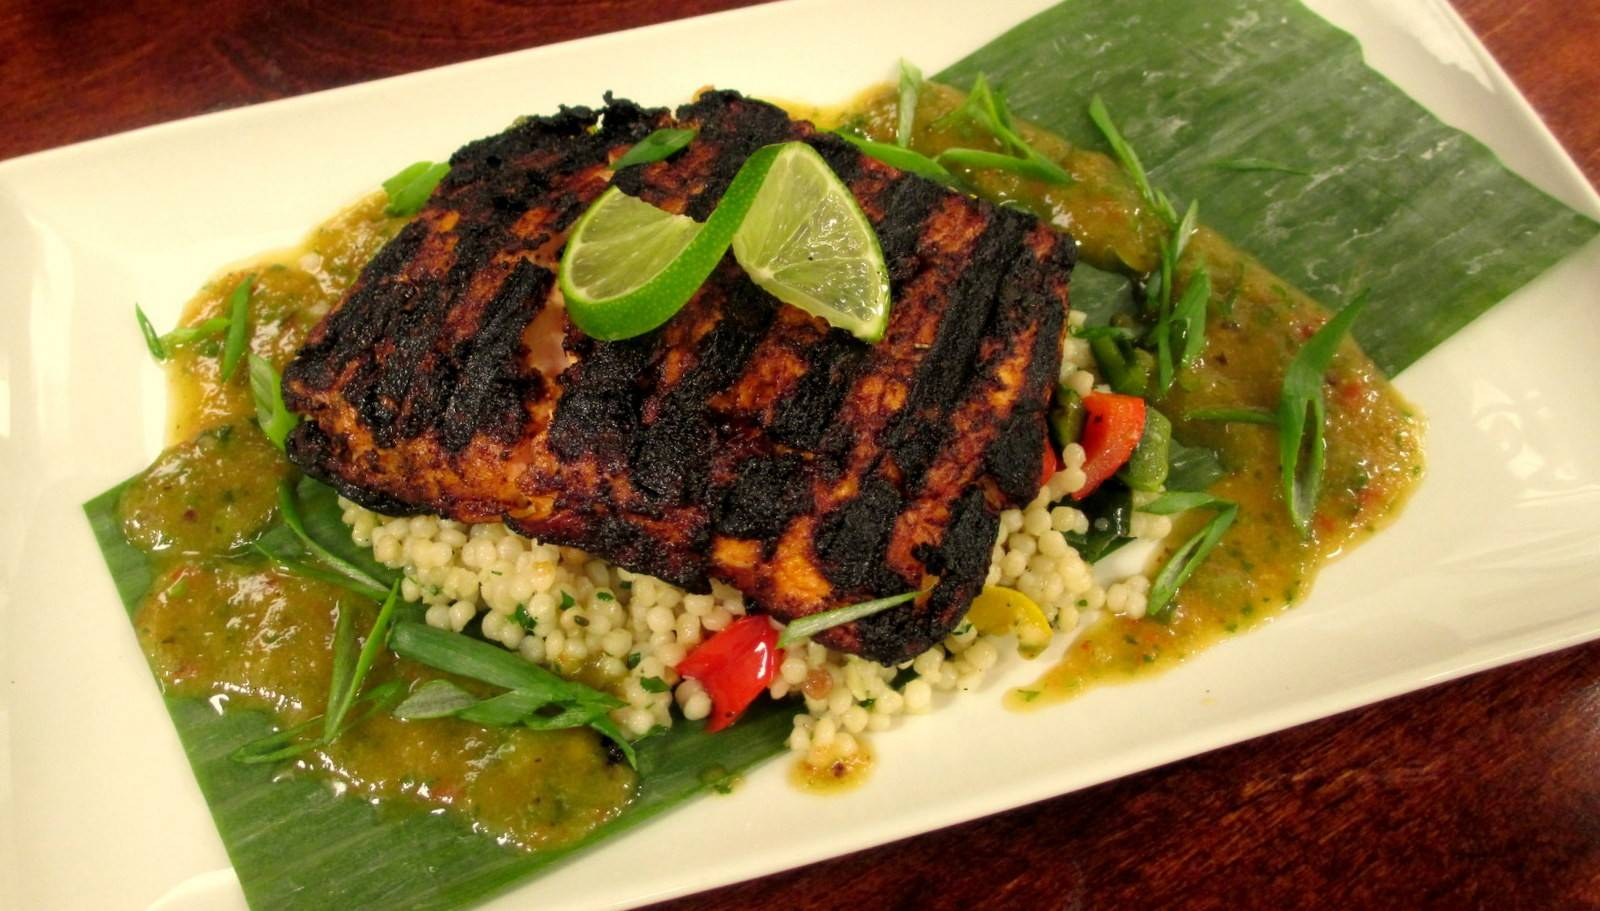 Try the grilled Caribbean arctic char for dinner as part of Weber Grill's meatless menu available through April 17.